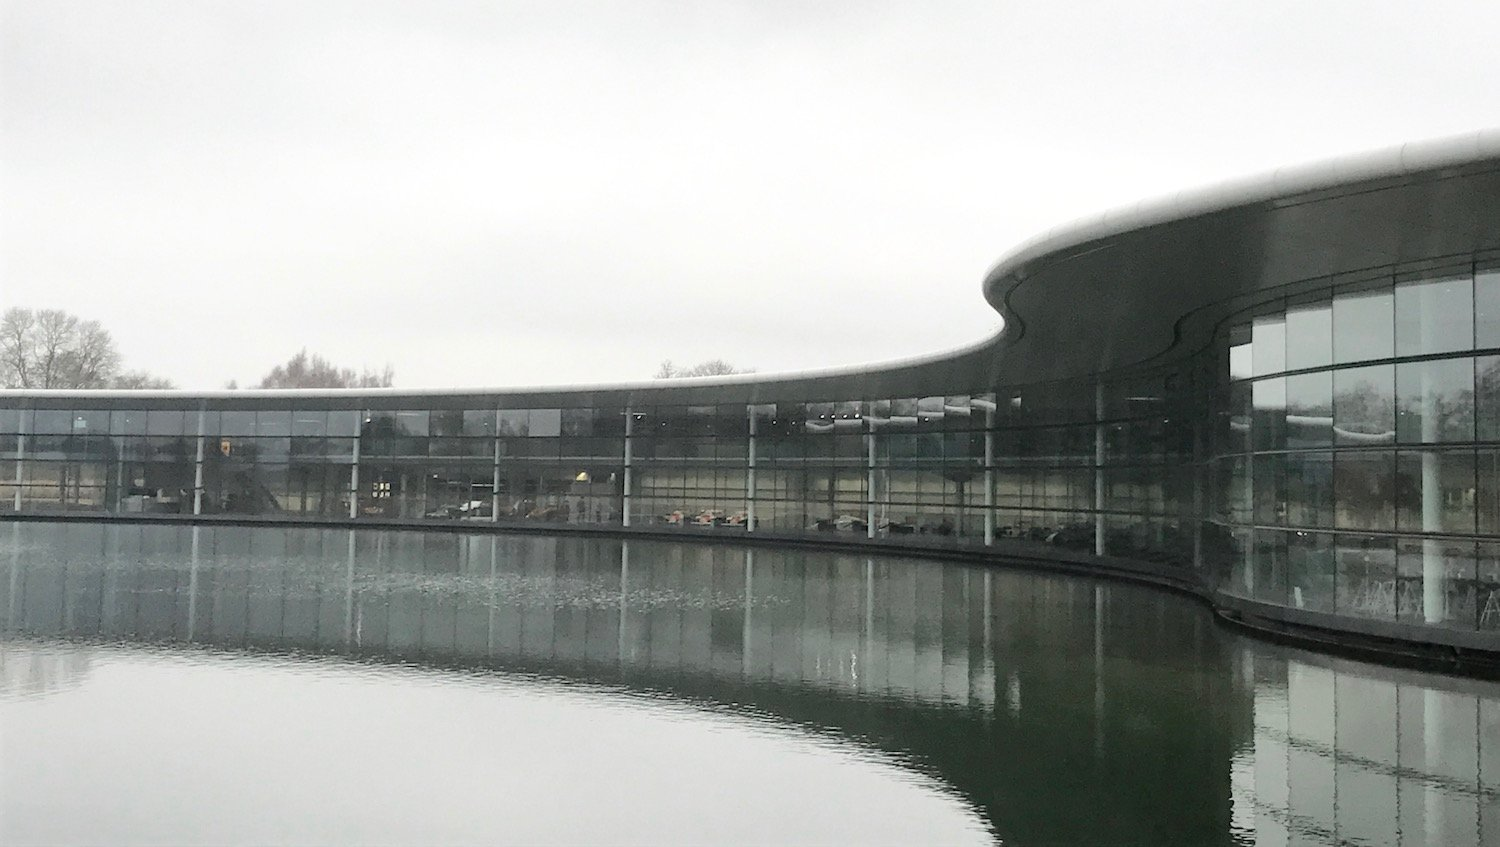 McLaren Automotive Technology Centre